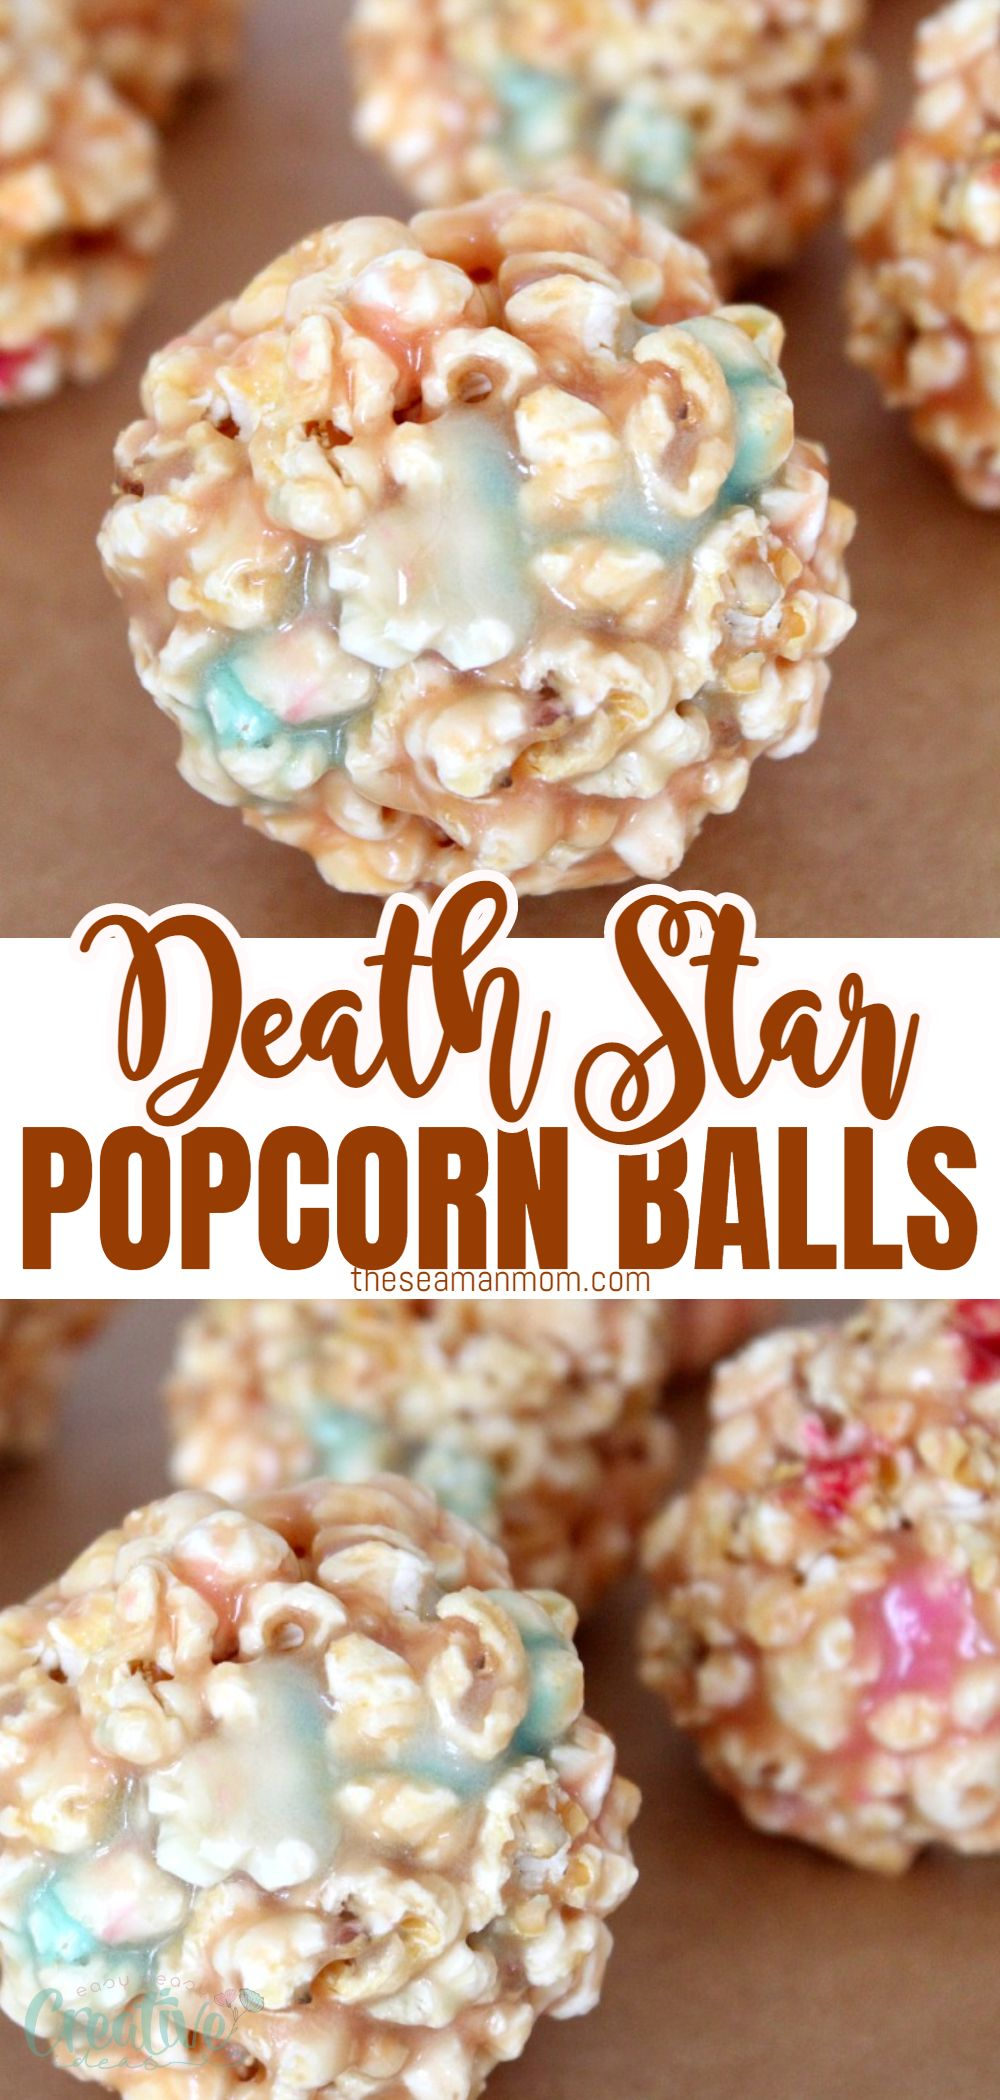 "These fun ""death Star"" marshmallow popcorn balls are a delightful twist to your regular popcorn, thanks to those colorful, eye catching marshmallows! Perfect pair for a Star Wars movie night with the kiddos or just because! via @petroneagu"